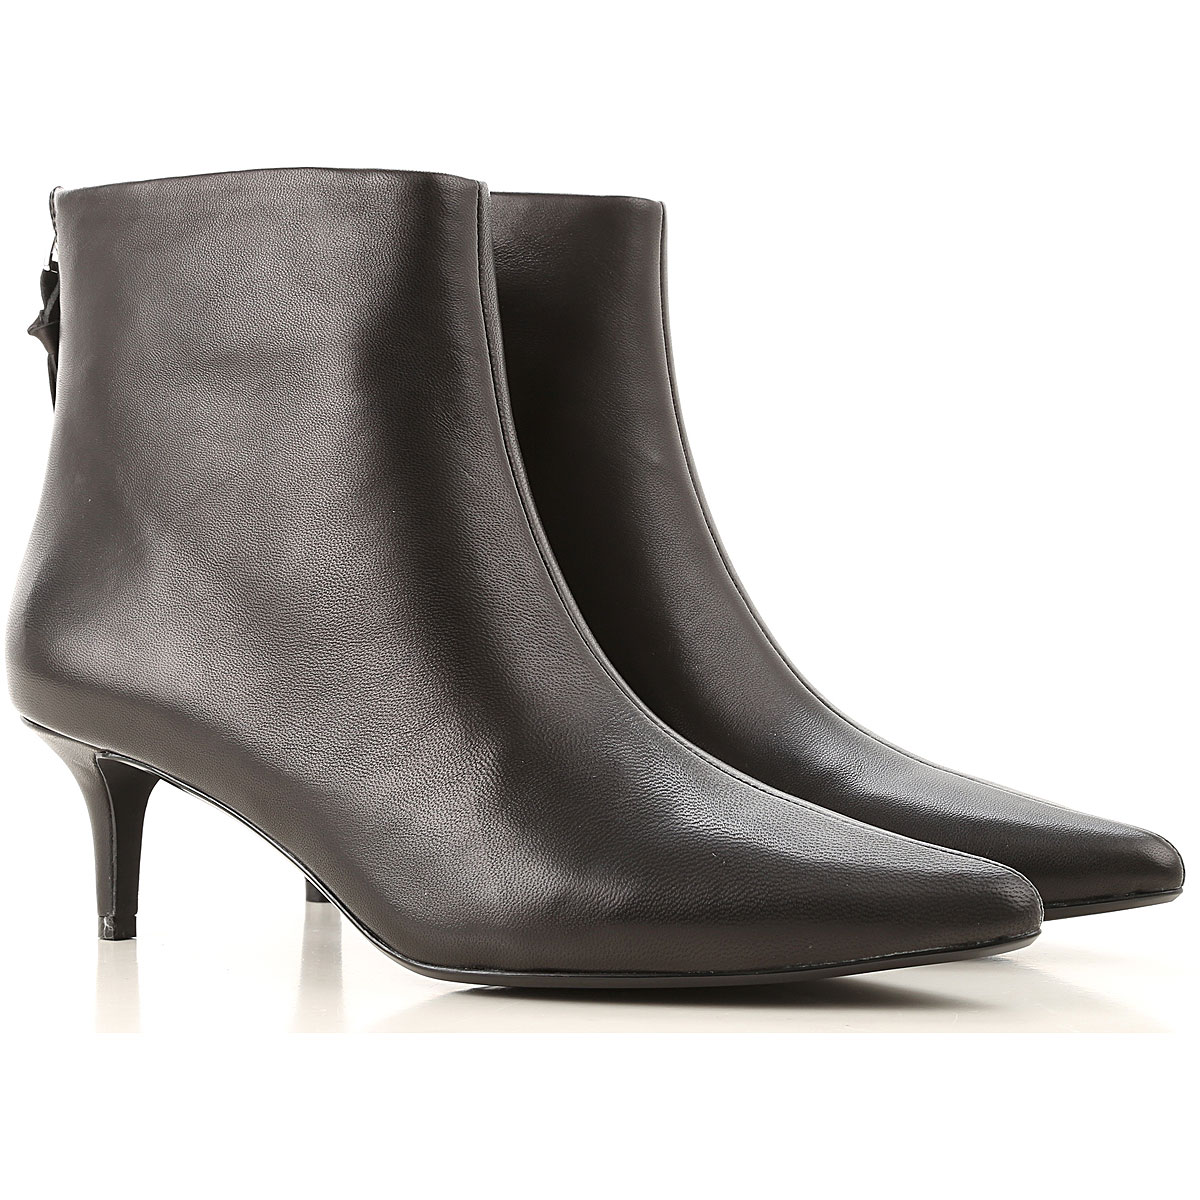 Kendall Kylie Boots for Women, Booties, Black, Leather, 2019, 6 9